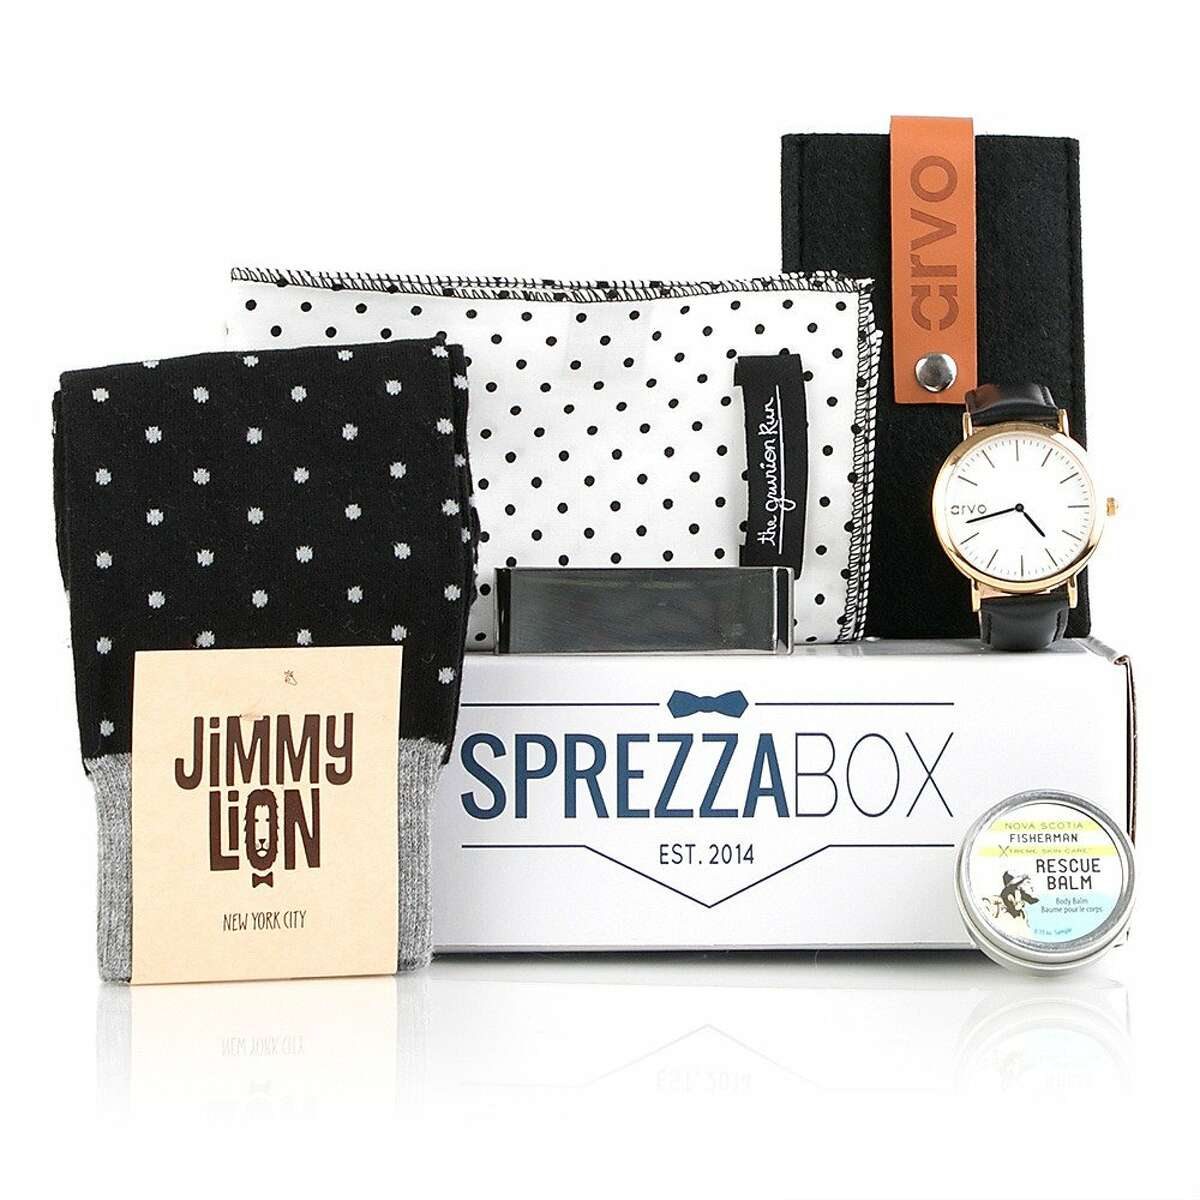 Sprezzabox. At $28 per month, Sprezzabox promises to upgrade your style with ties, watch straps, and shoehorns.